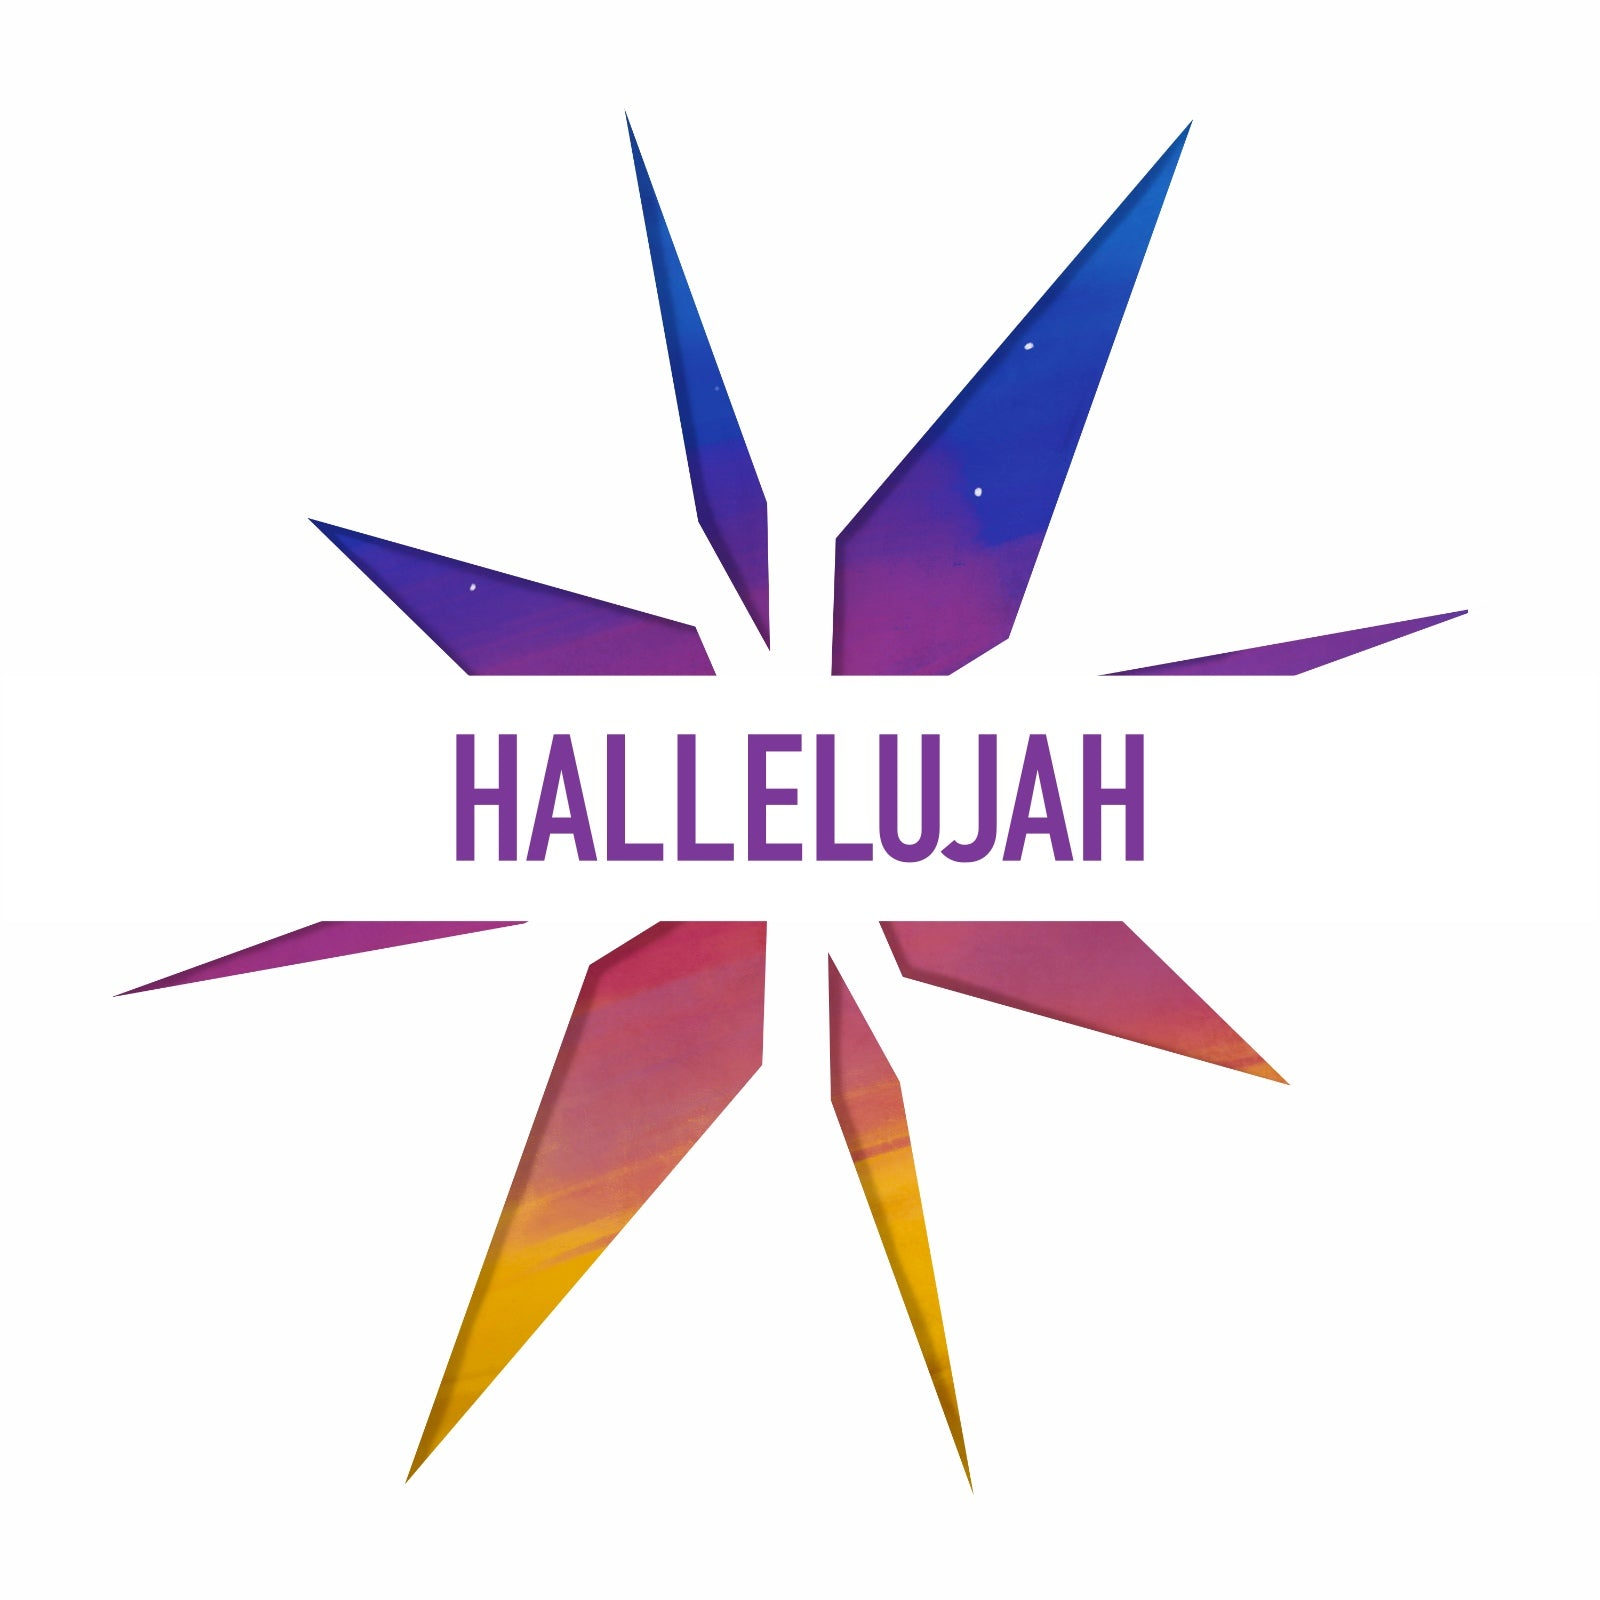 Hallelujah (backing track)